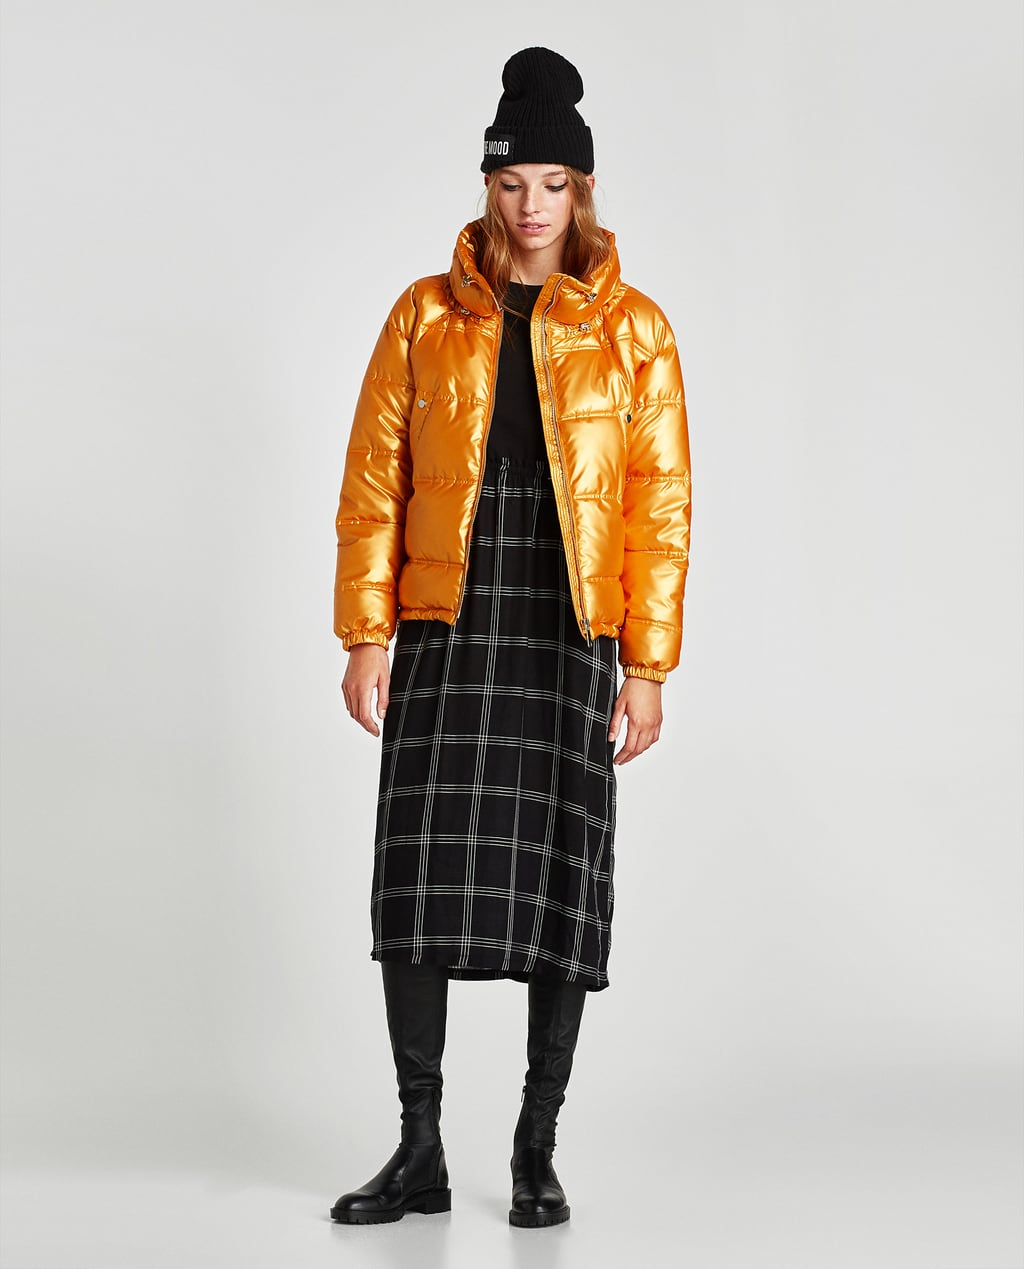 I Want All The Puffer Jackets This Season Carley K